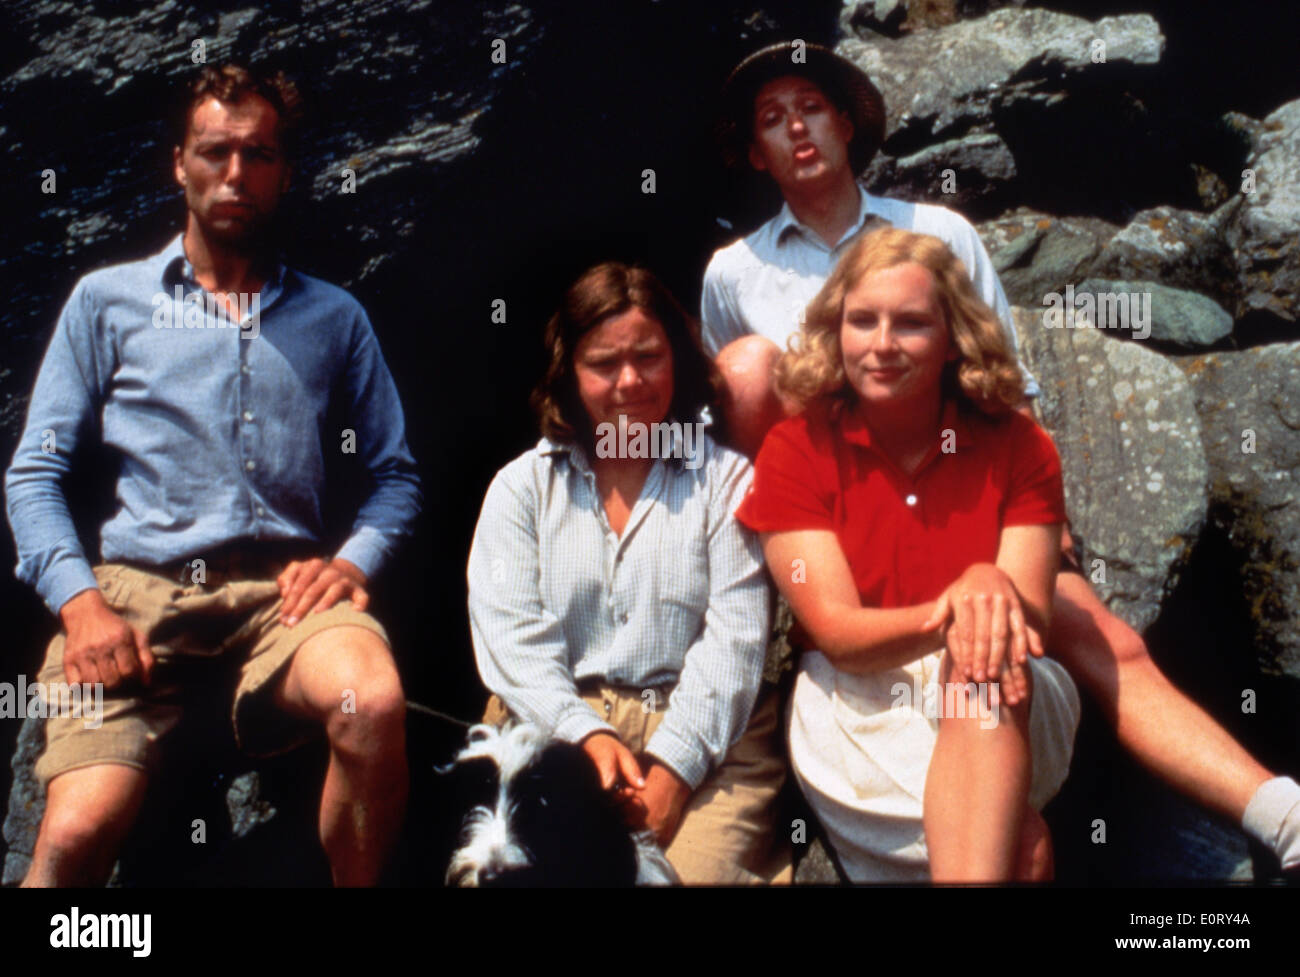 La bande dessinée présente... 5 GO MAD DE DORSET (TV) PETER RICHARDSON ADRIAN EDMONDSON FRIENCH DAWN JENNIFER SAUNDERS KEITH Photo Stock